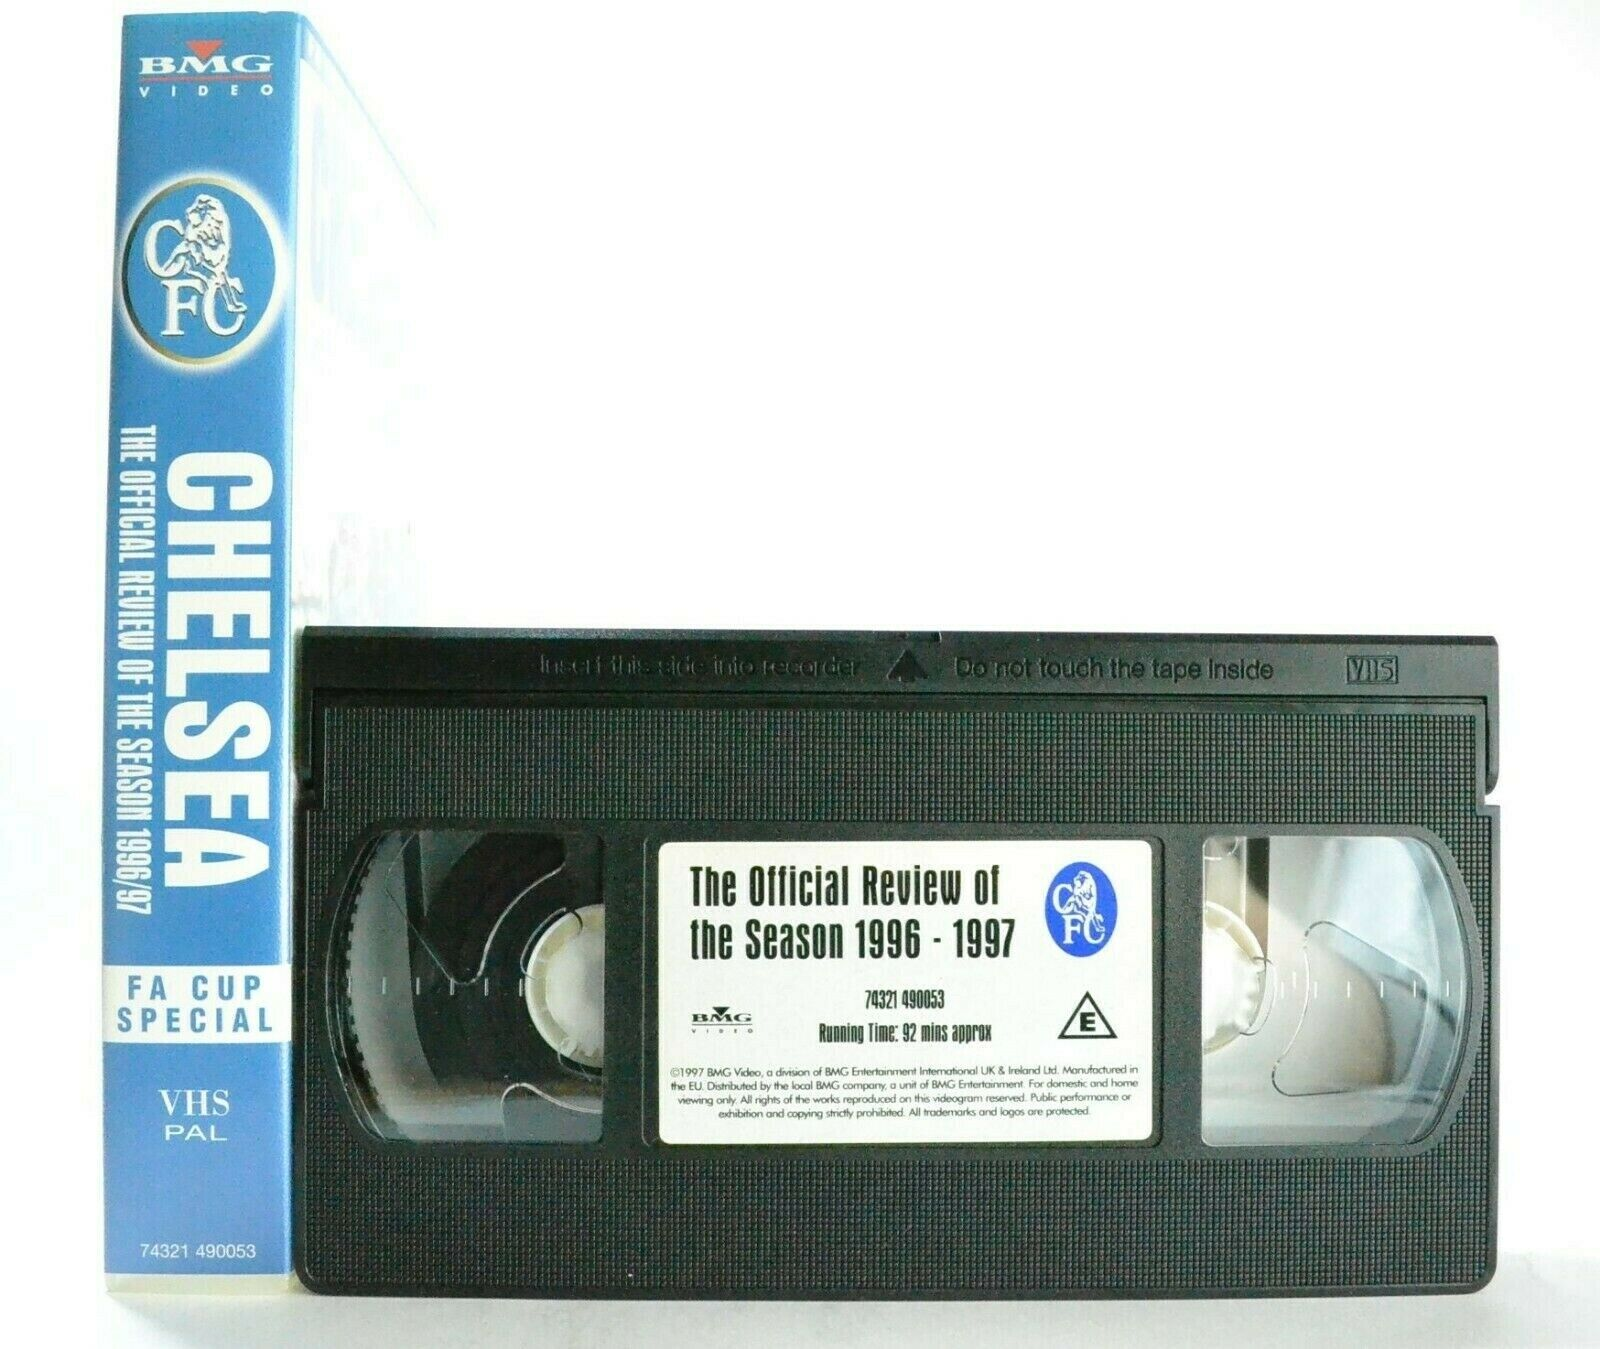 Chelsea, Cup, FA, Football, No, Pal, Review, Season, Special, Sports, VHS